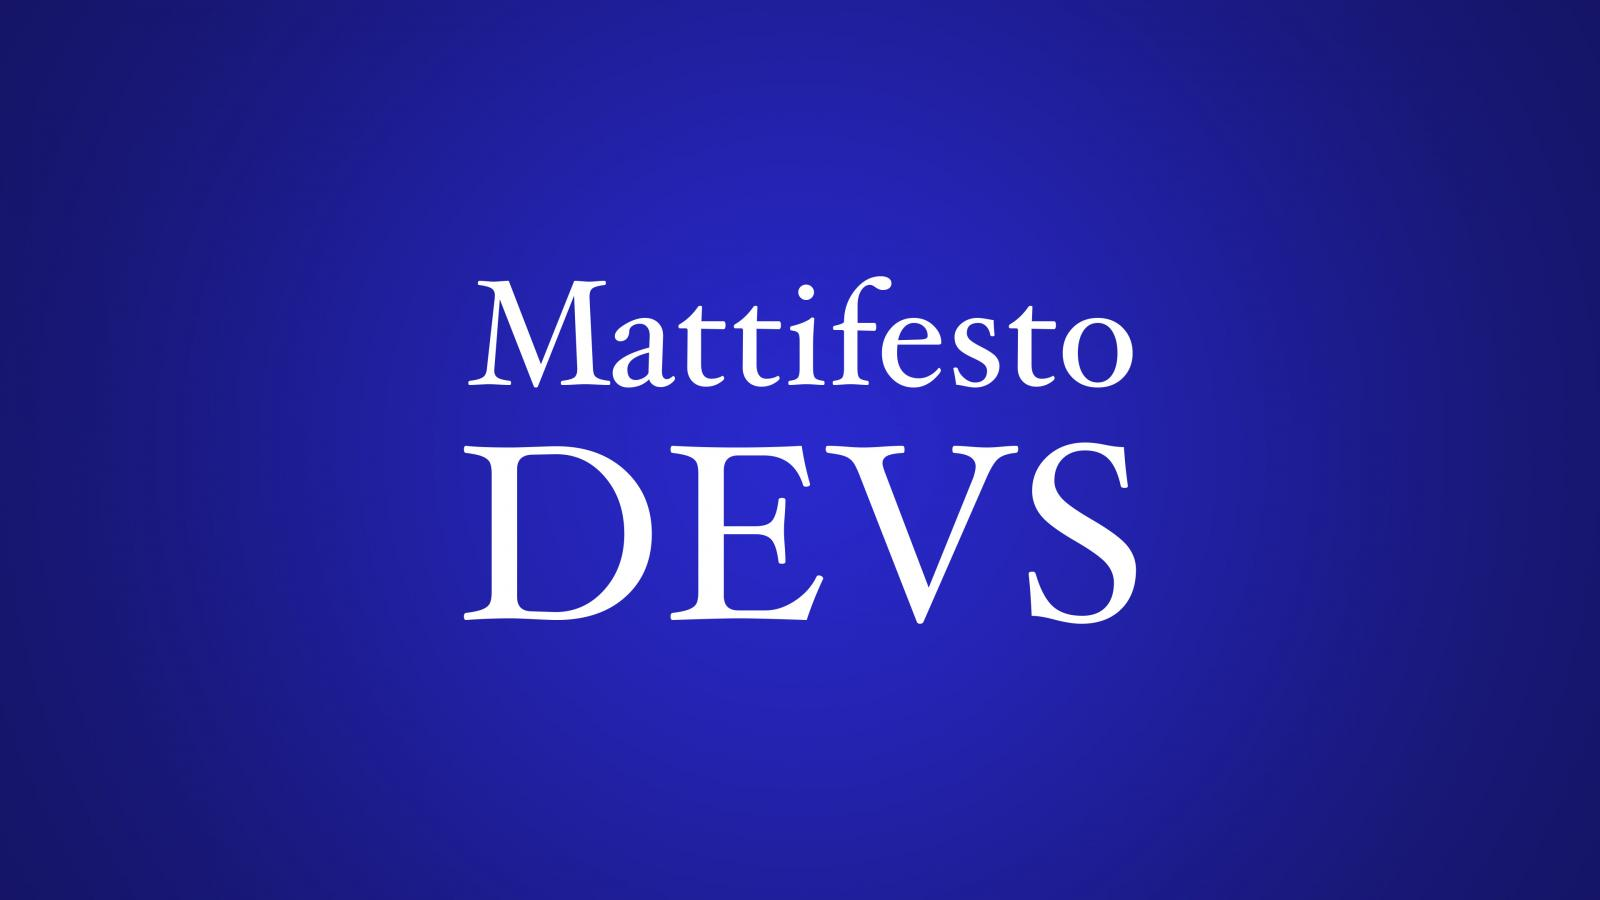 Blue radial gradient and the text: Mattifesto DEVS